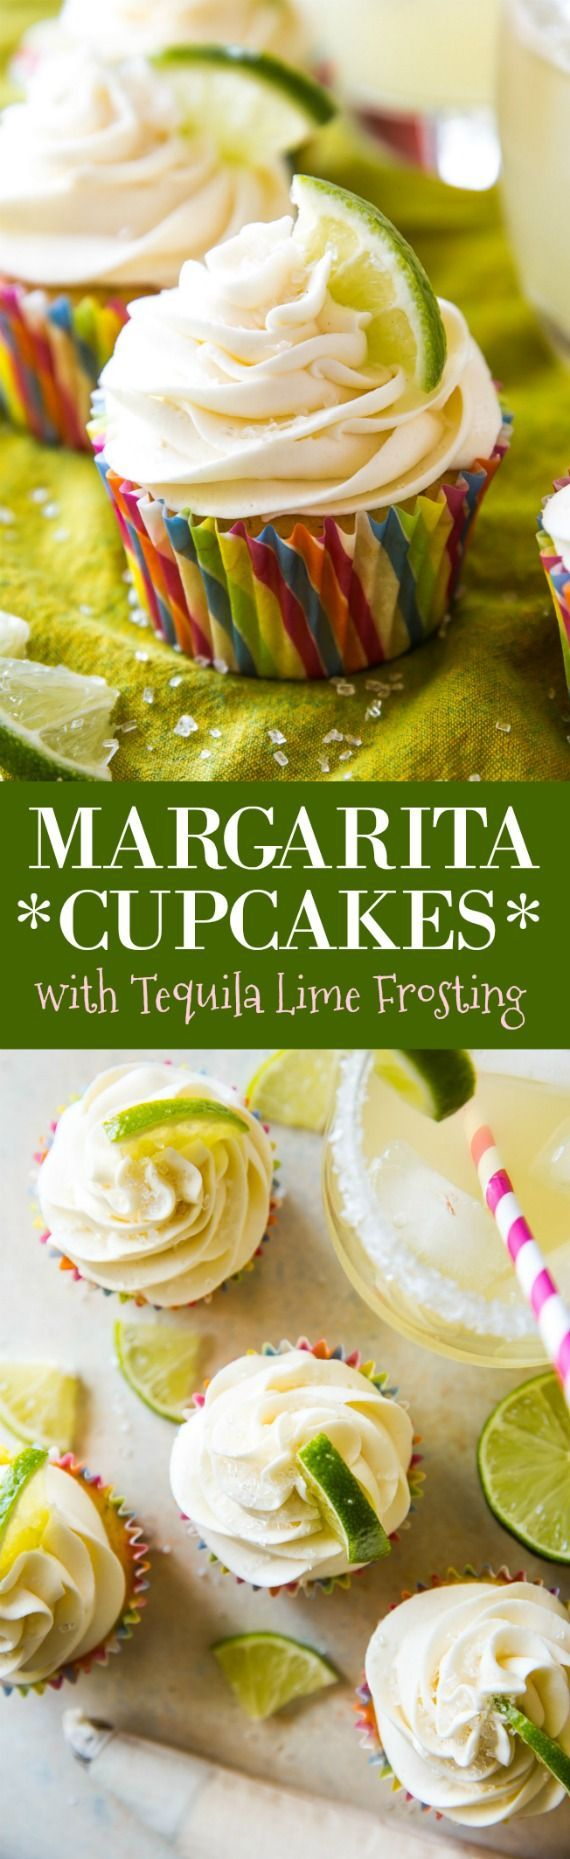 Margarita cupcakes begin with a simple sweet lime cupcake base and are topped with fluffy tequila lime frosting! Great for a Cinco de Mayo party.